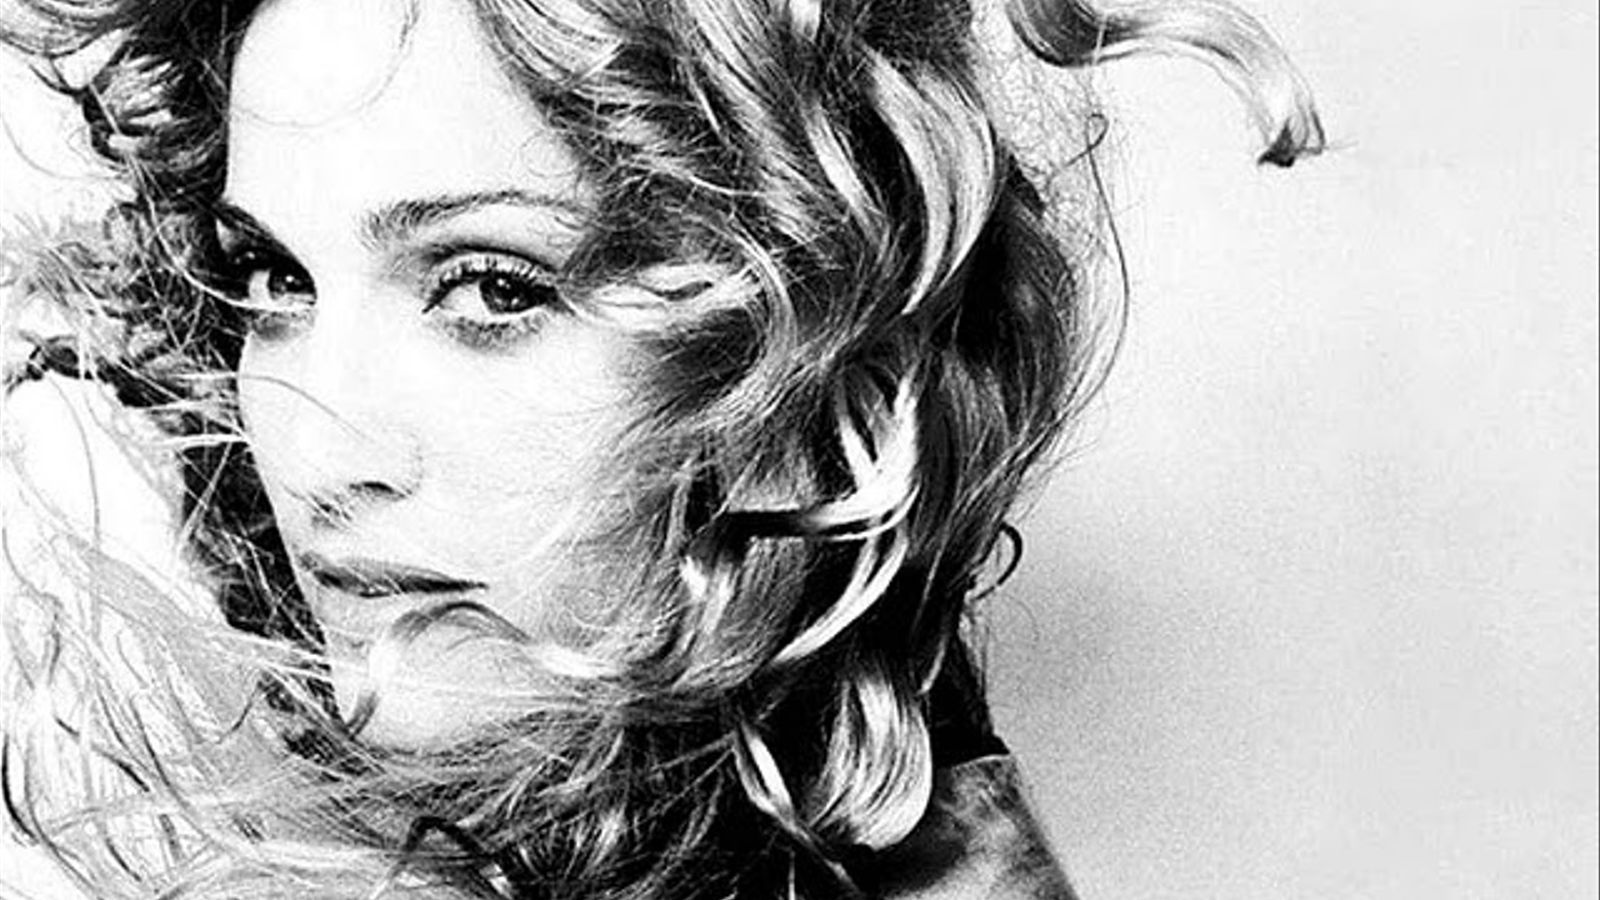 El proper senzill de Madonna: 'Give me all your love'